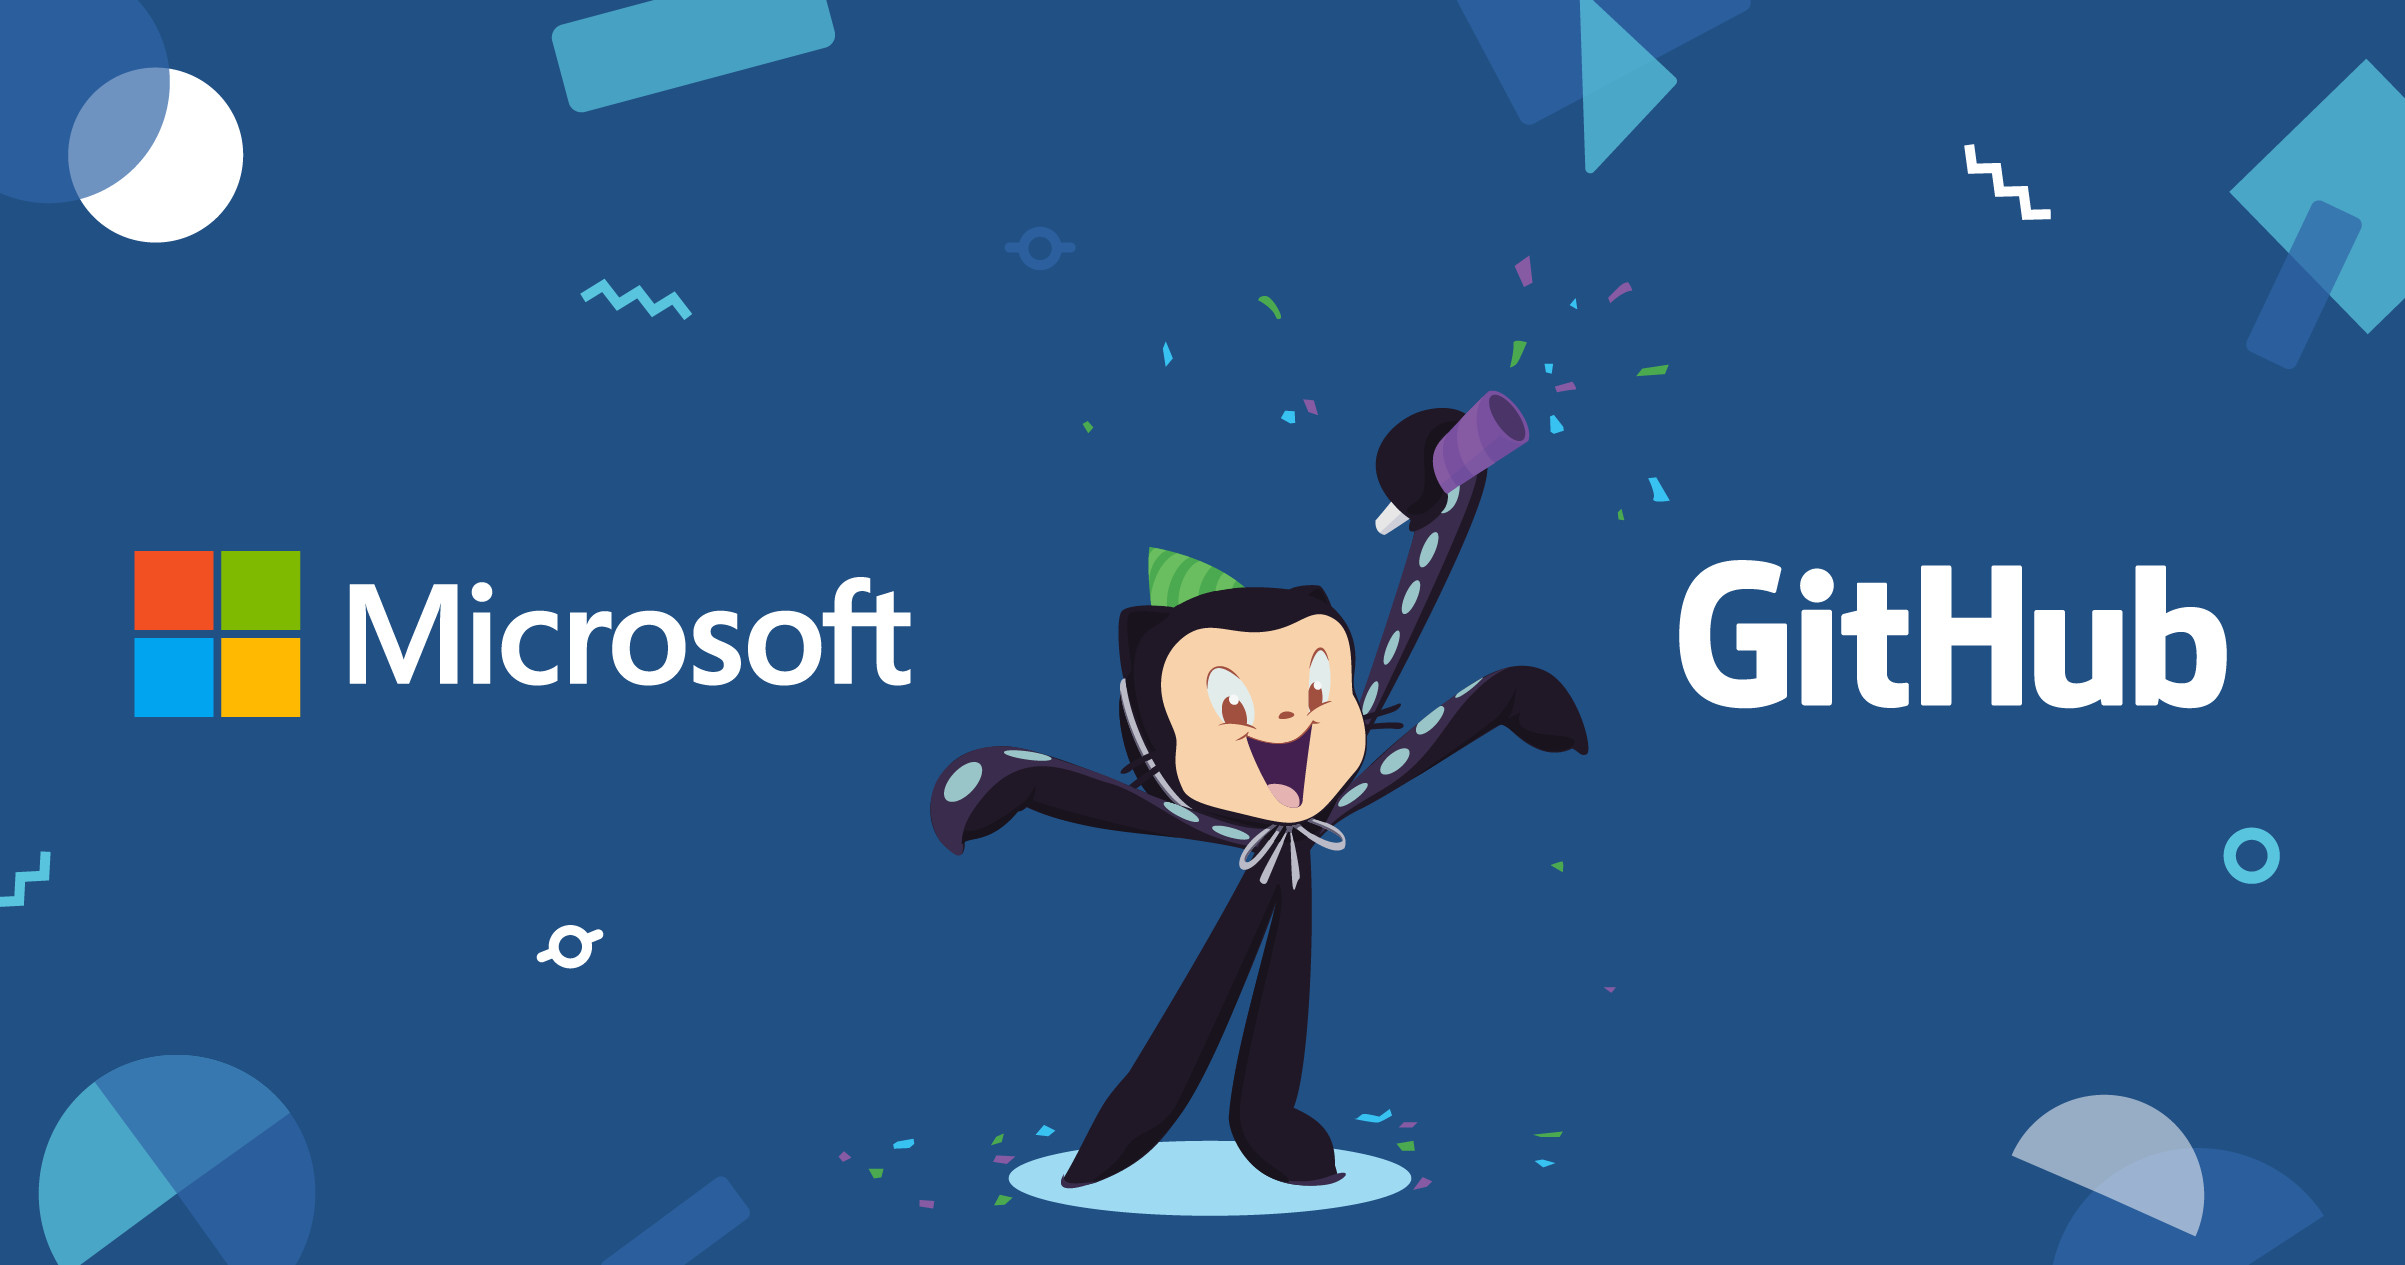 Microsoft is said to have agreed to acquire coding site GitHub